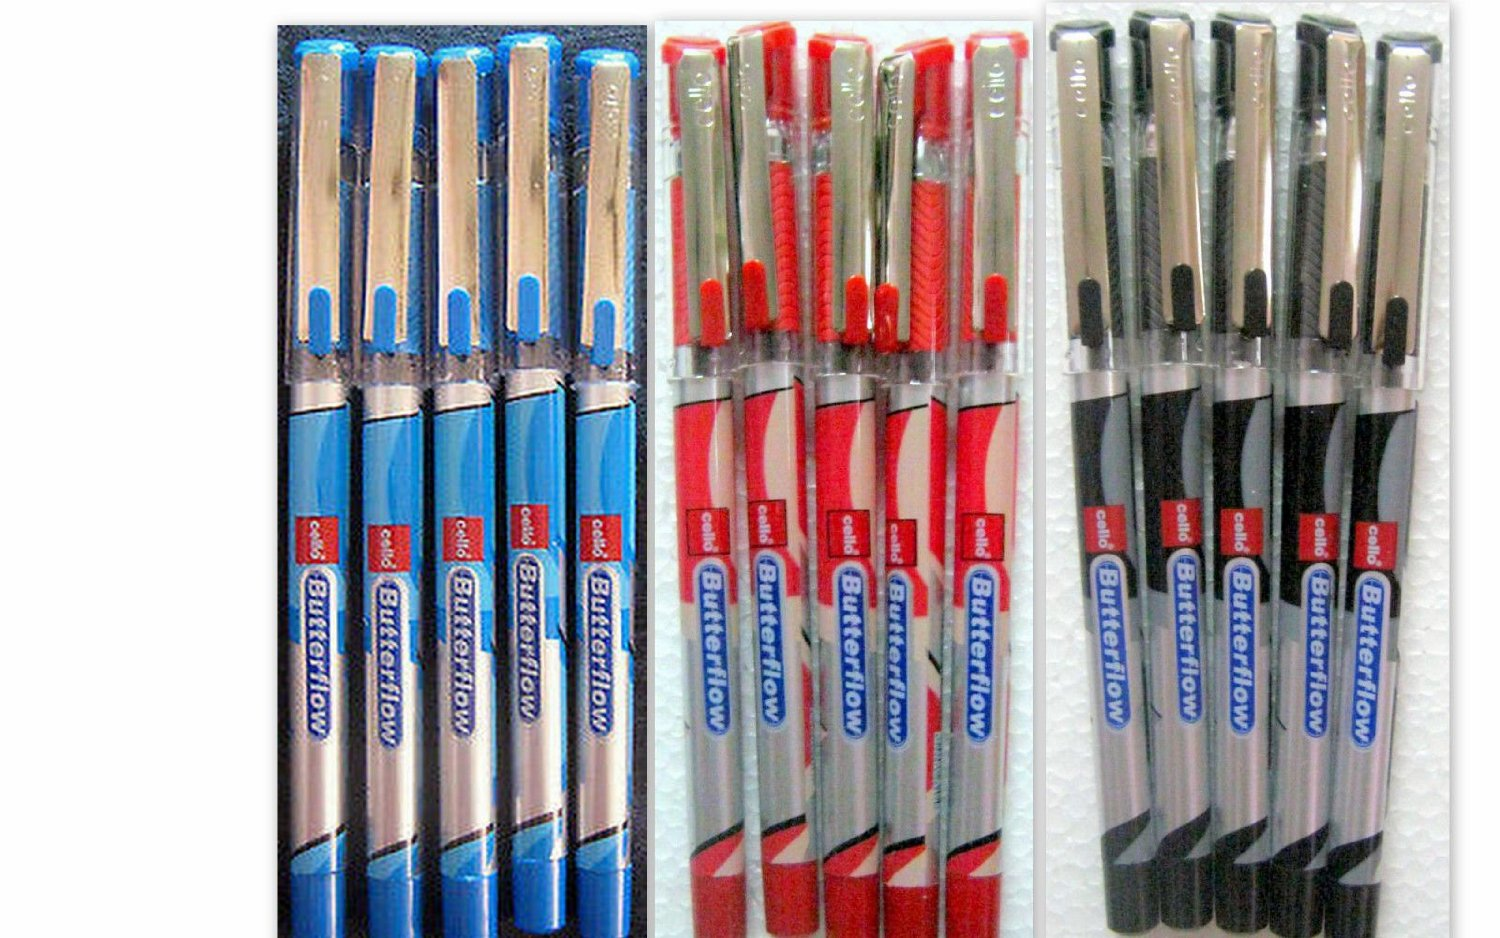 Set of 15 Cello Butterflow Blue, Red & Black Ball Pen - Brand New - India